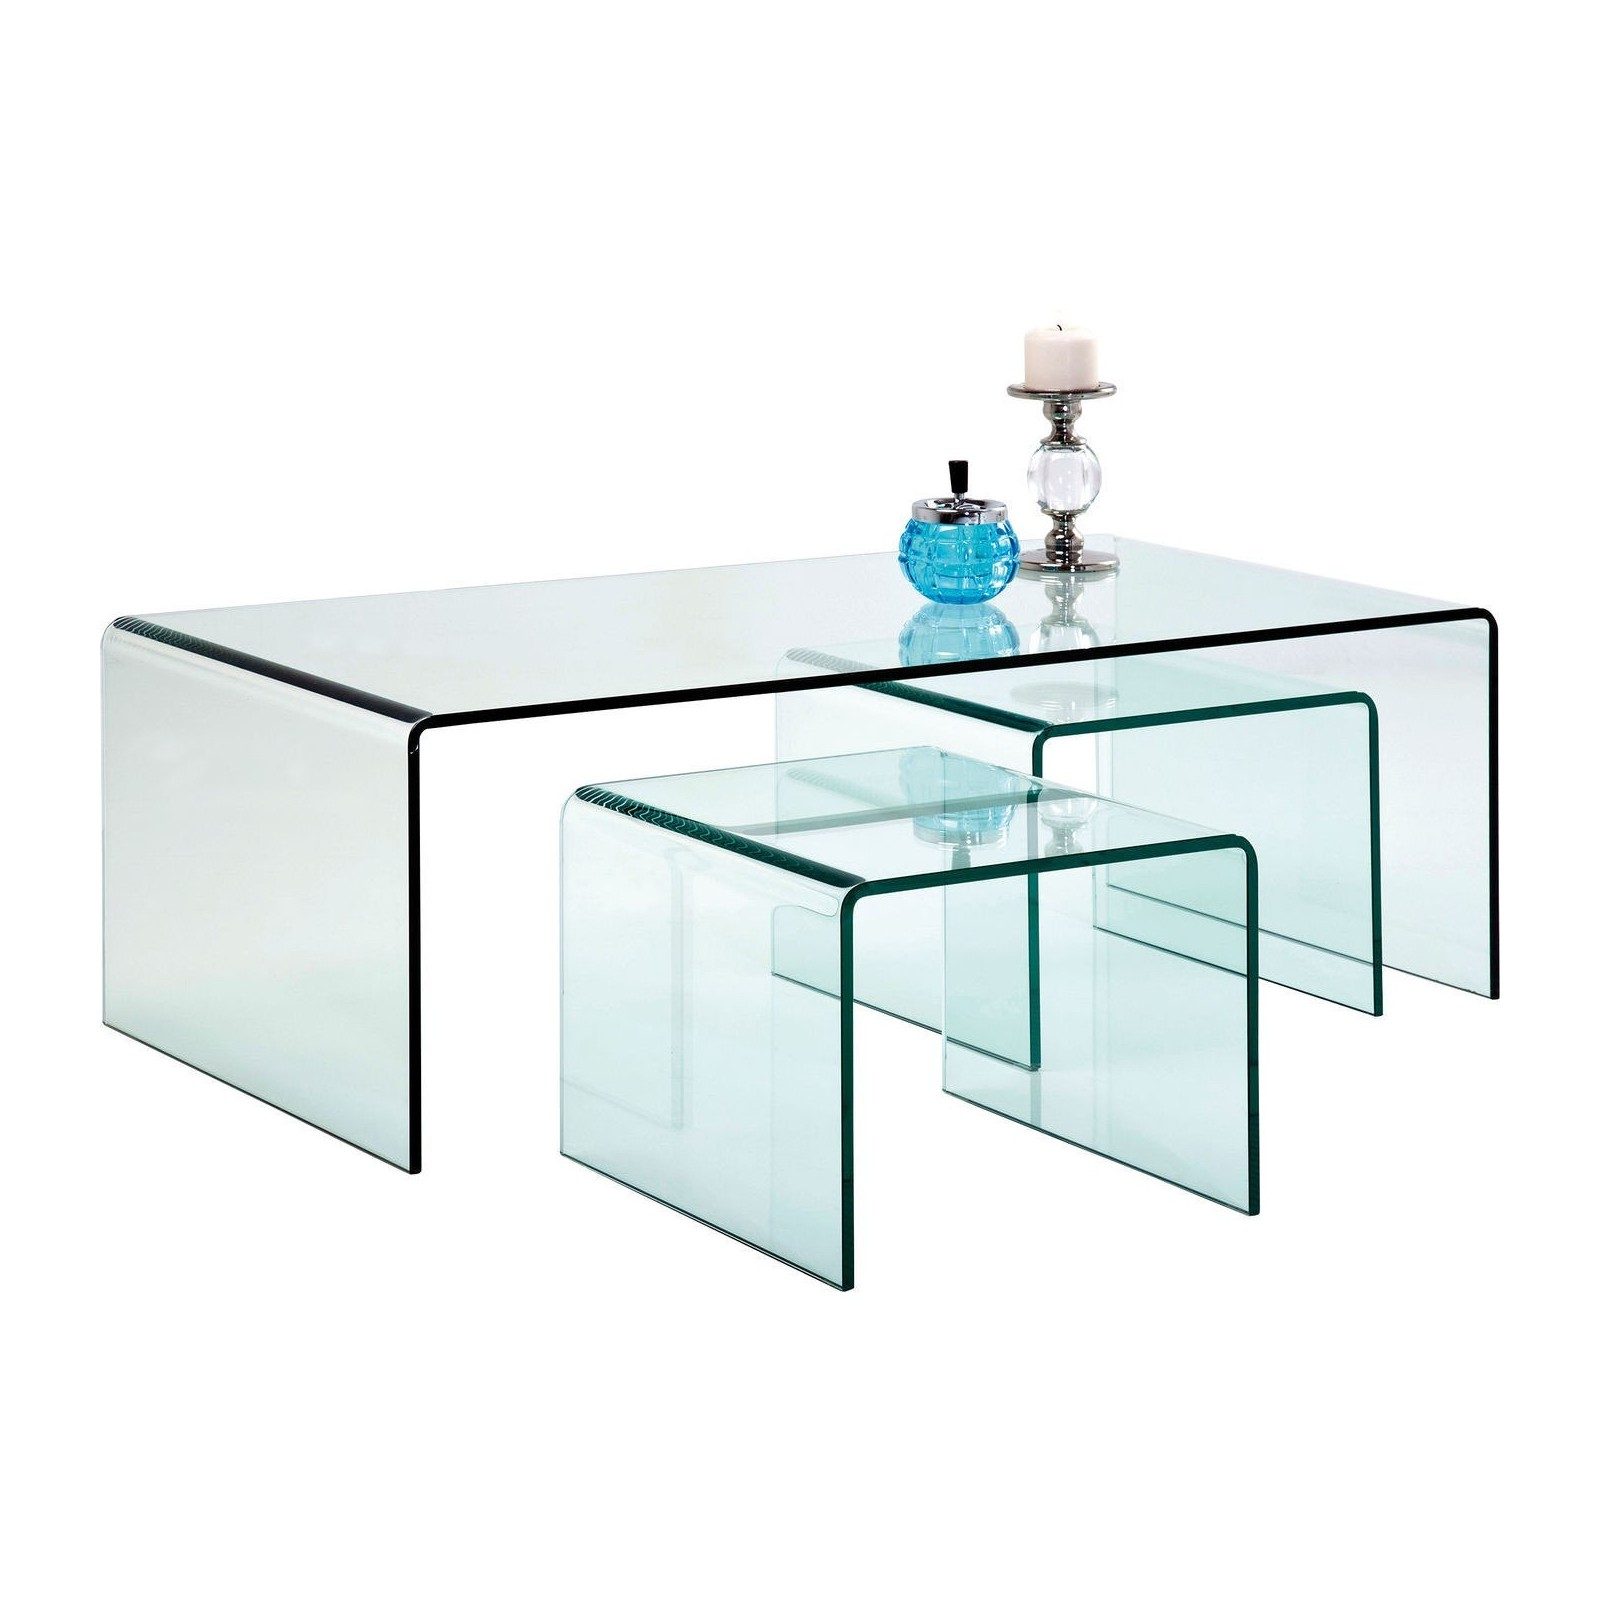 Table basse contemporaine en verre clear club kare design for Table de salon transparente